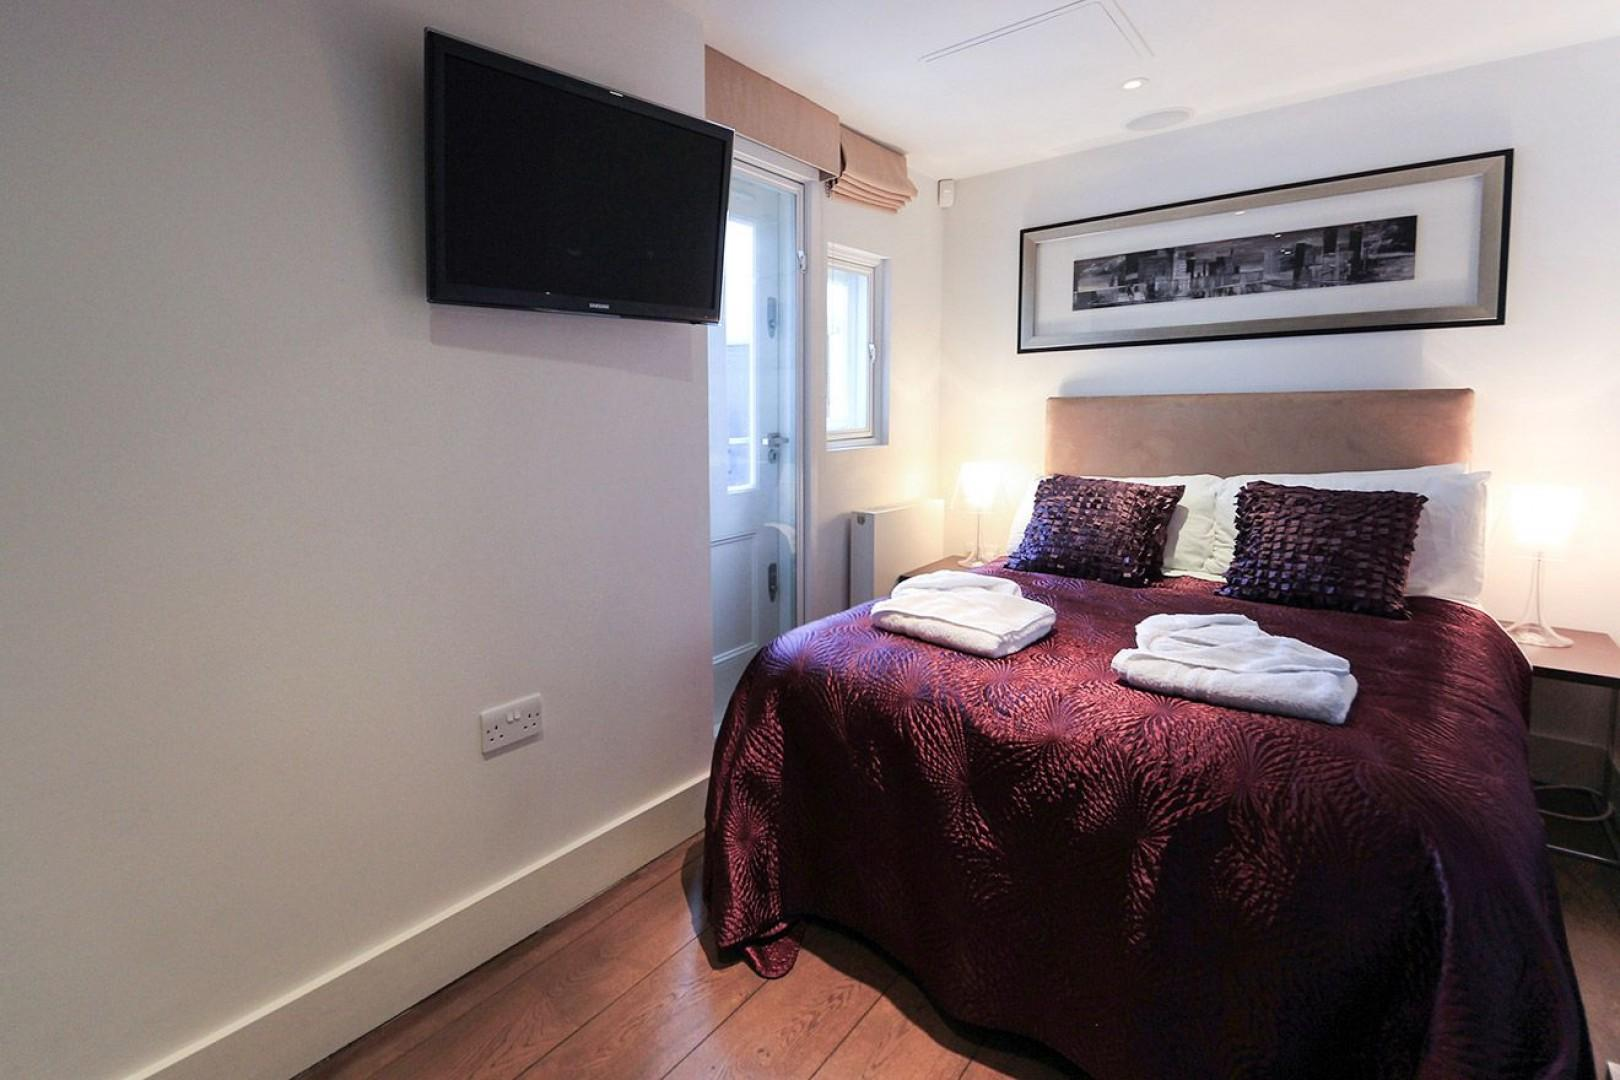 Second bedroom with a comfortable bed and flat screen television